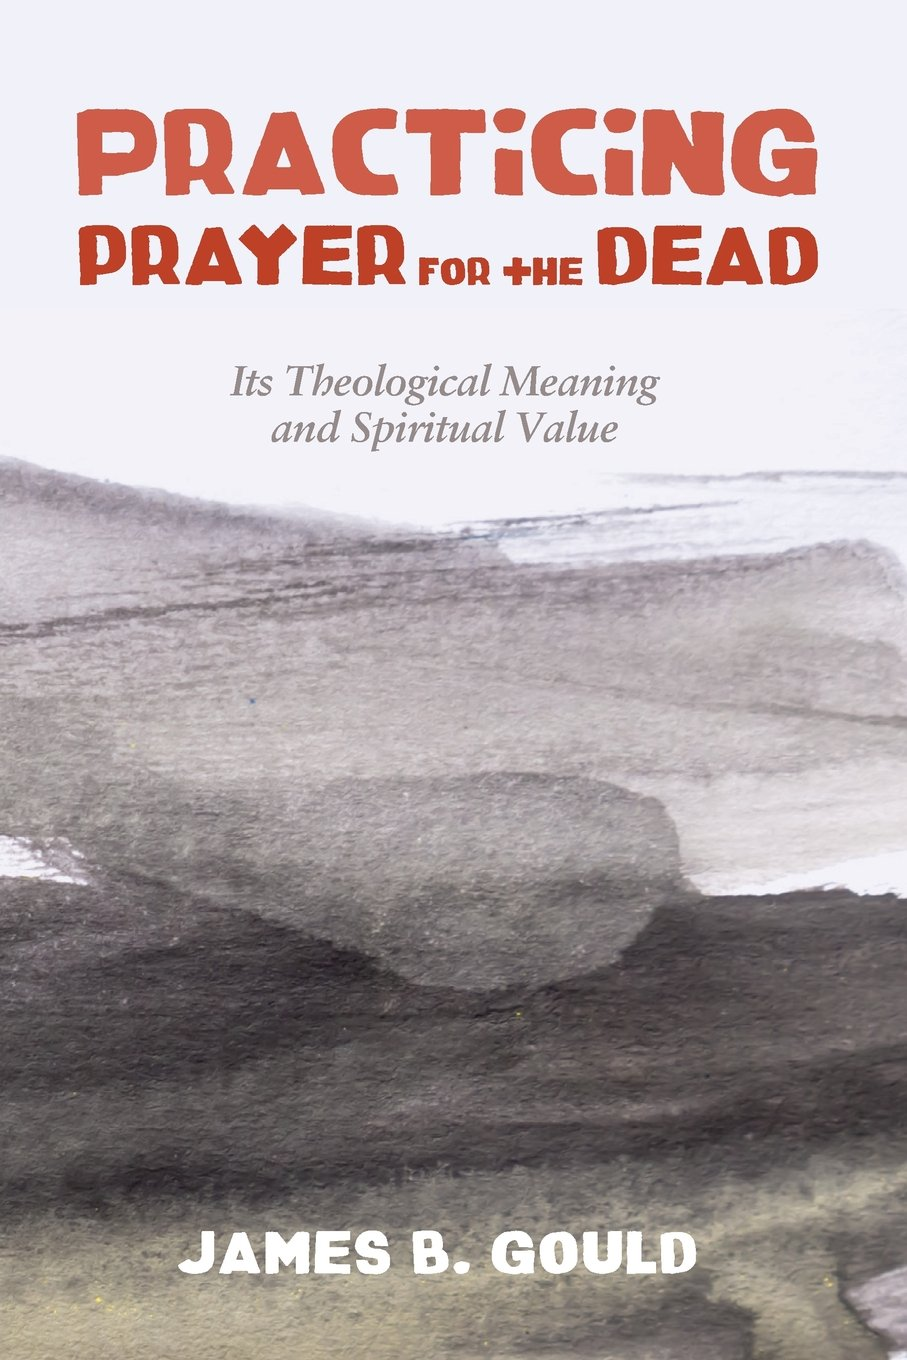 Practicing Prayer for the Dead: Its Theological Meaning and Spiritual Value